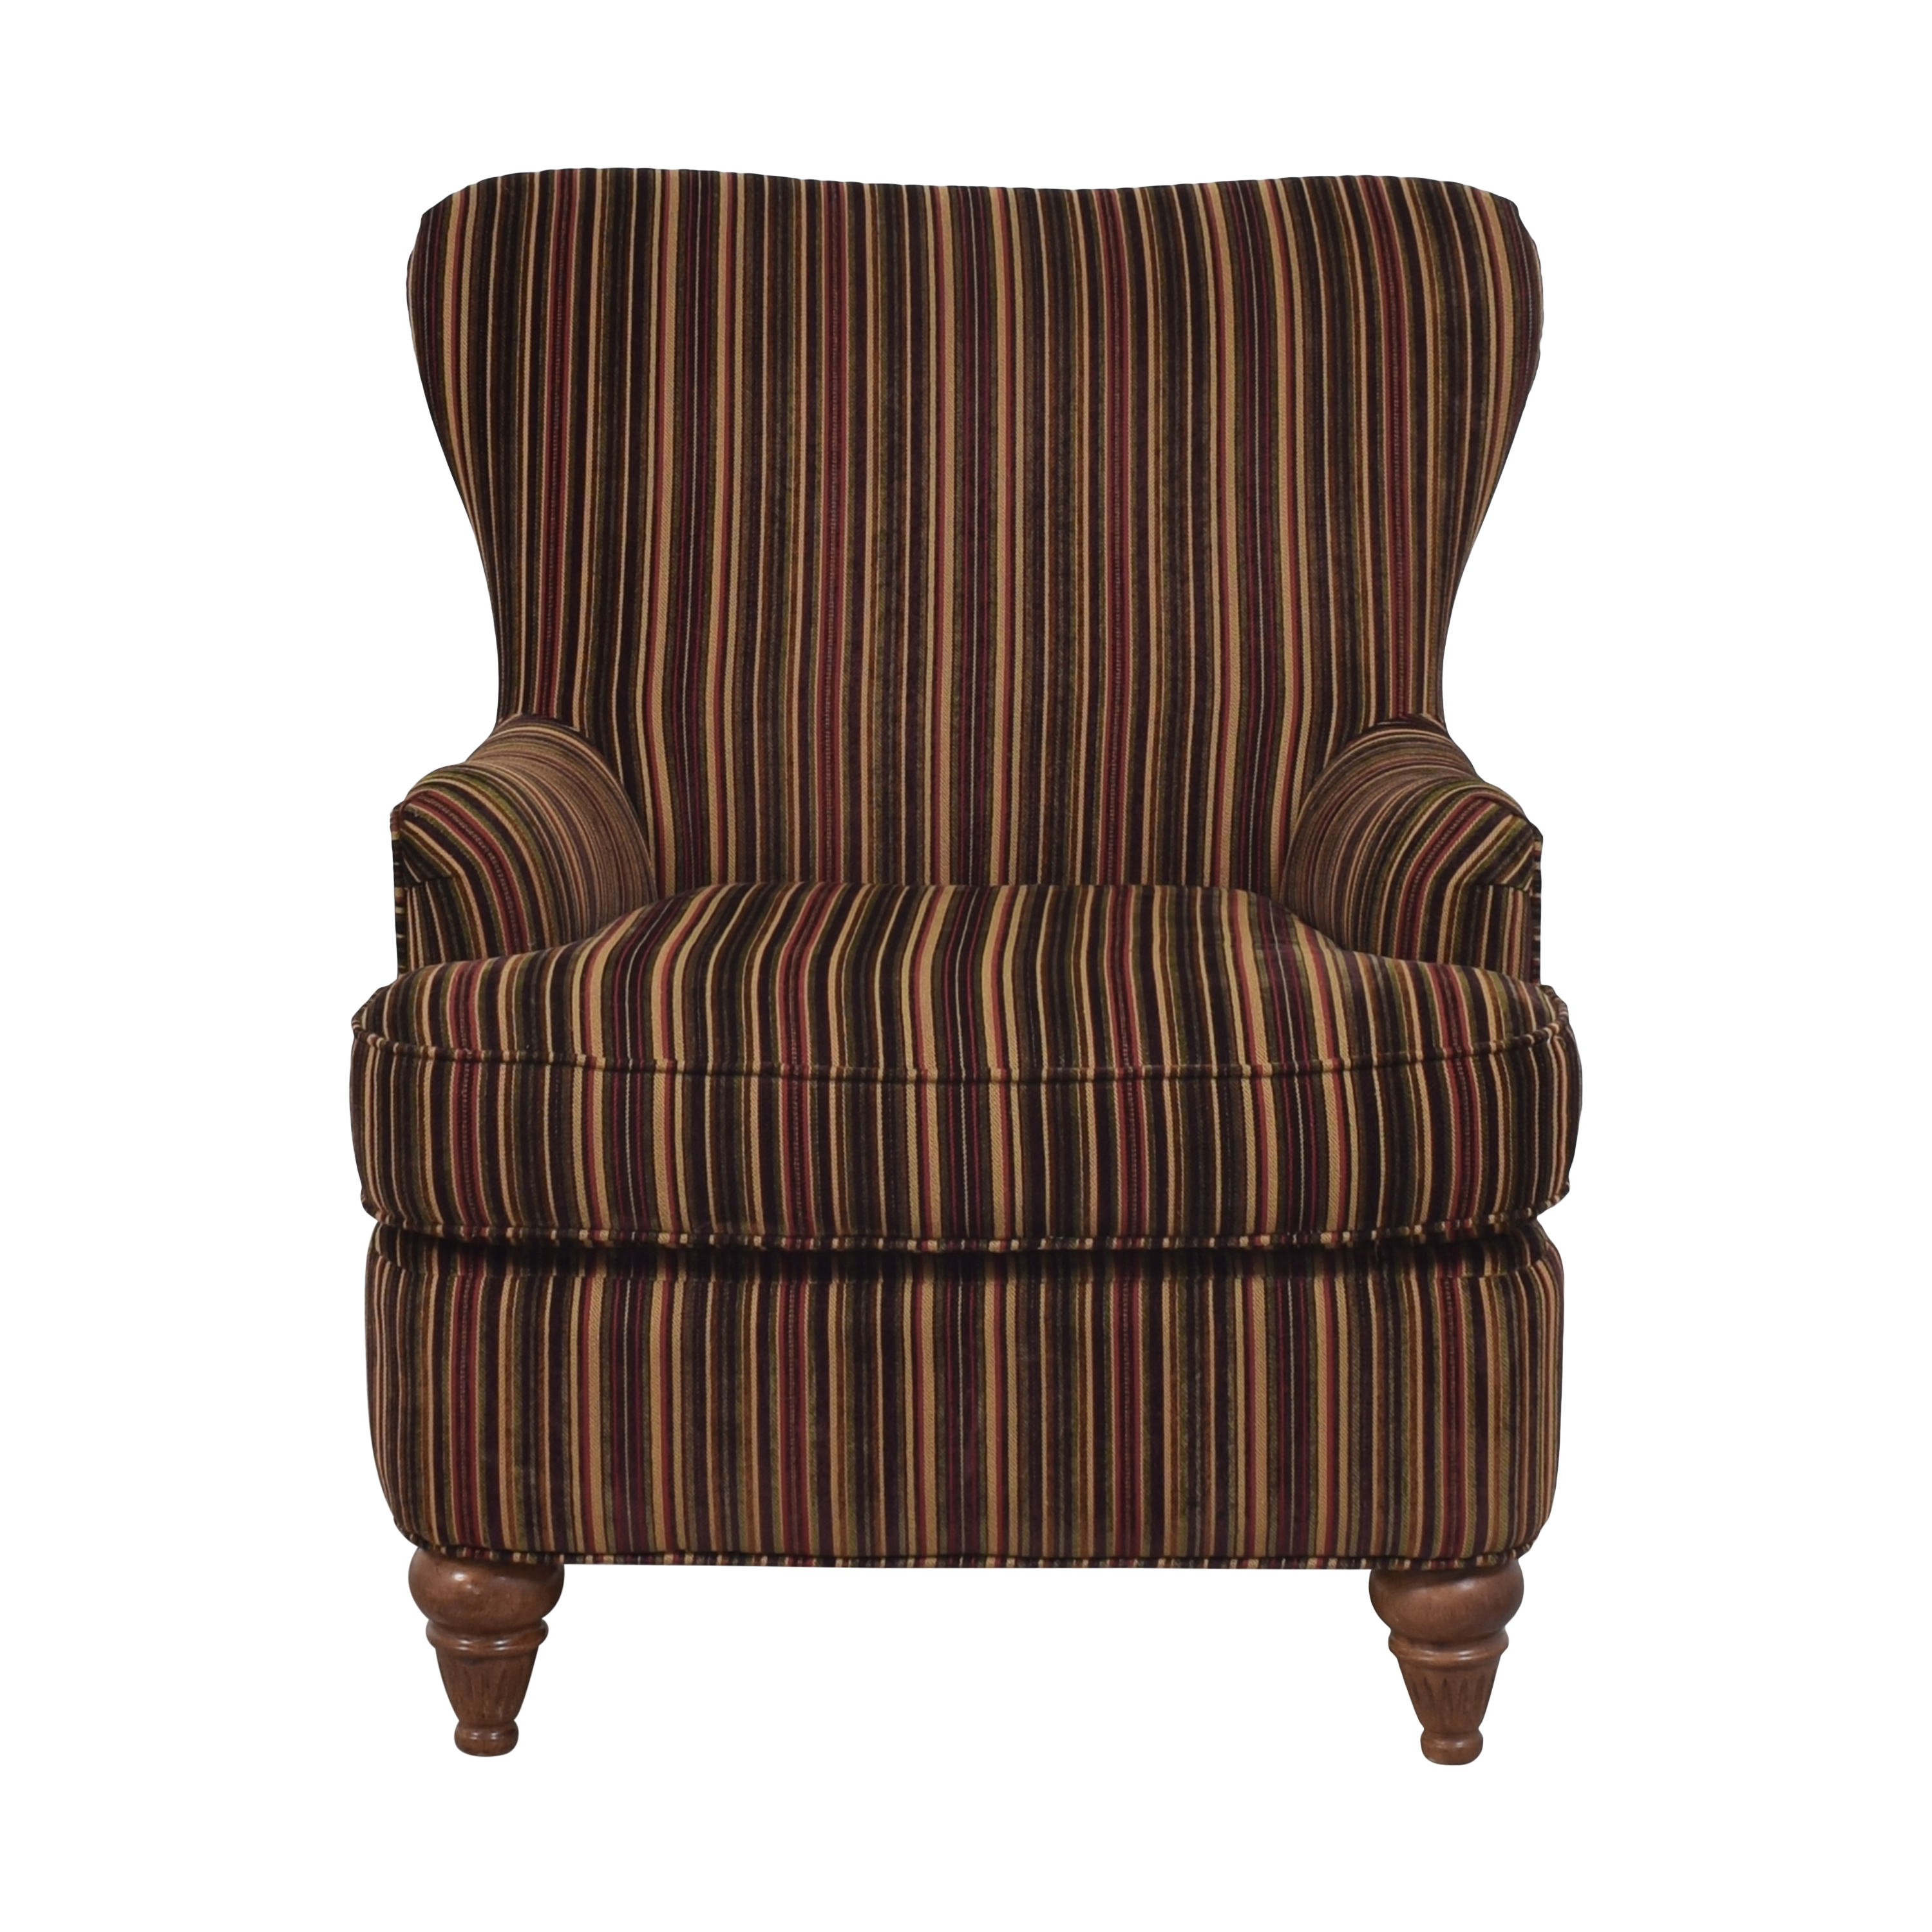 buy Masterfield Furniture Striped Accent Chair Masterfield Furniture Accent Chairs